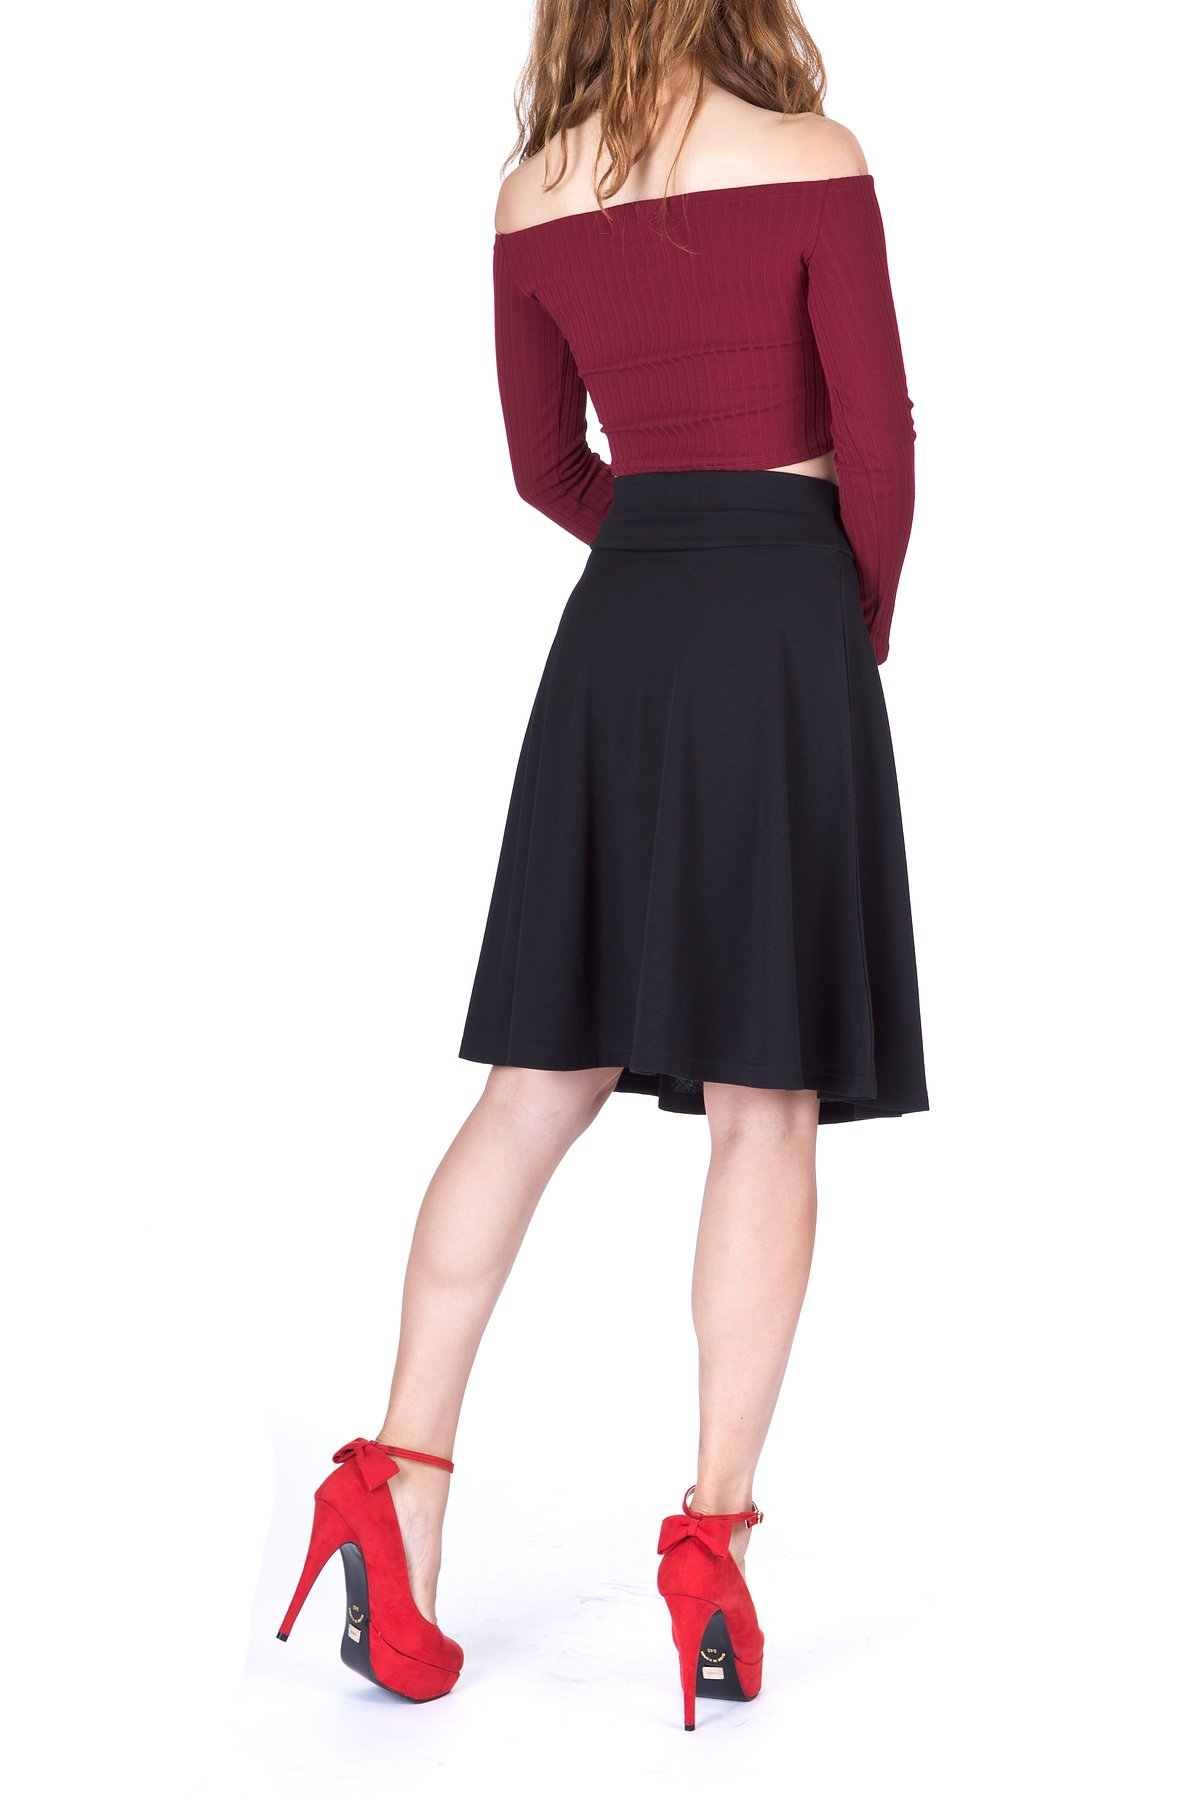 Impeccable Elastic High Waist A-line Full Flared Swing Skater Knee Length Skirt (M, Black) by Dani's Choice (Image #5)